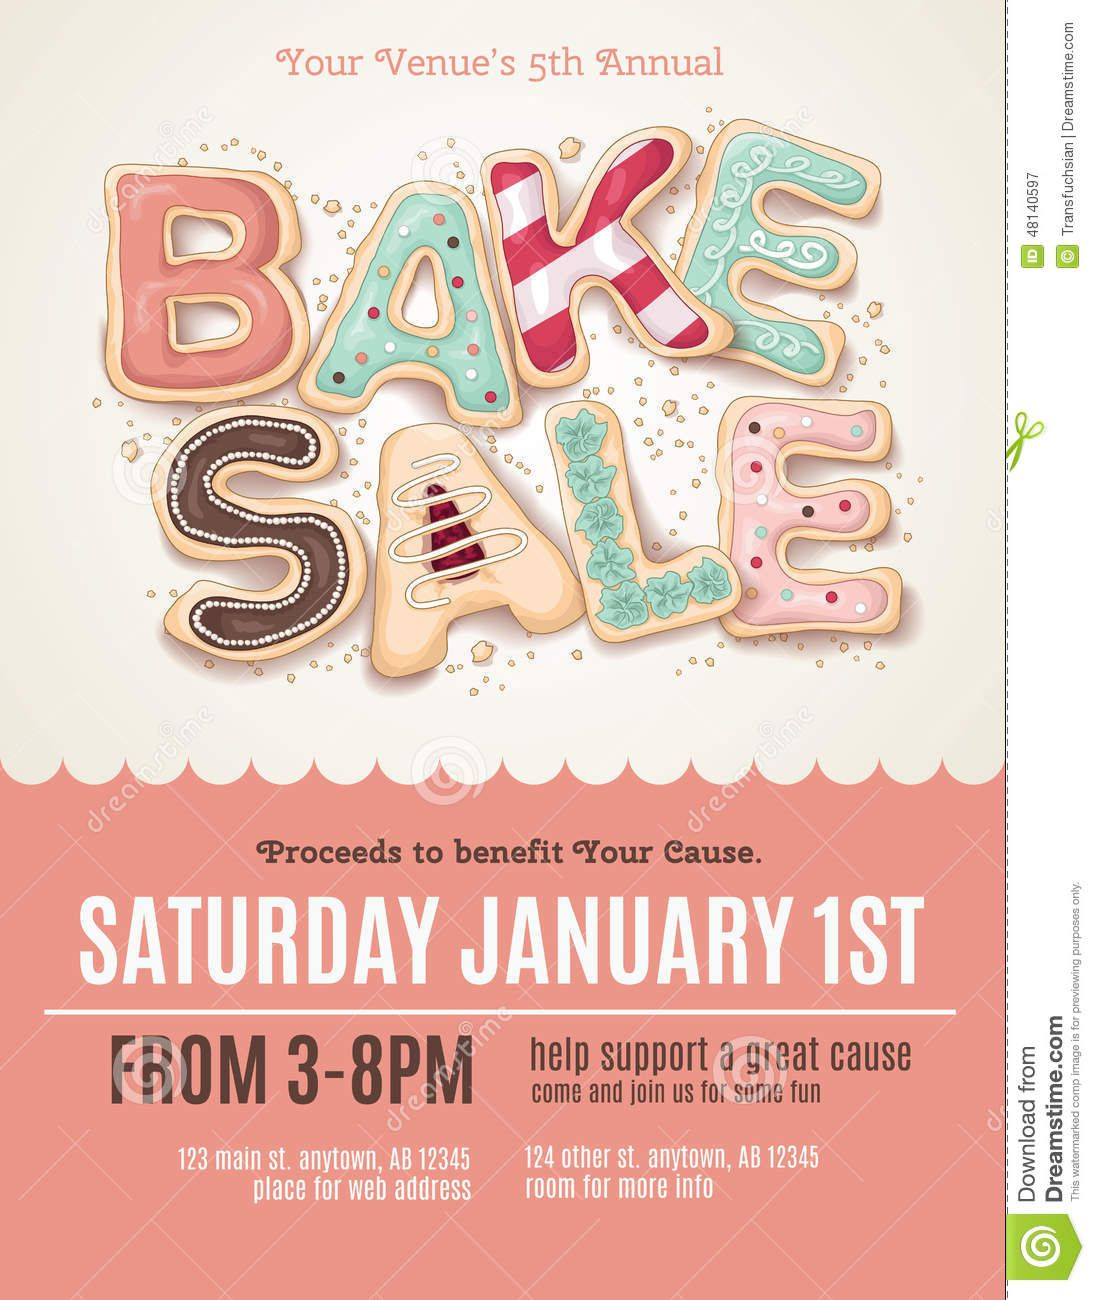 Fun Cookie Bake Sale Flyer Template  Download From Over